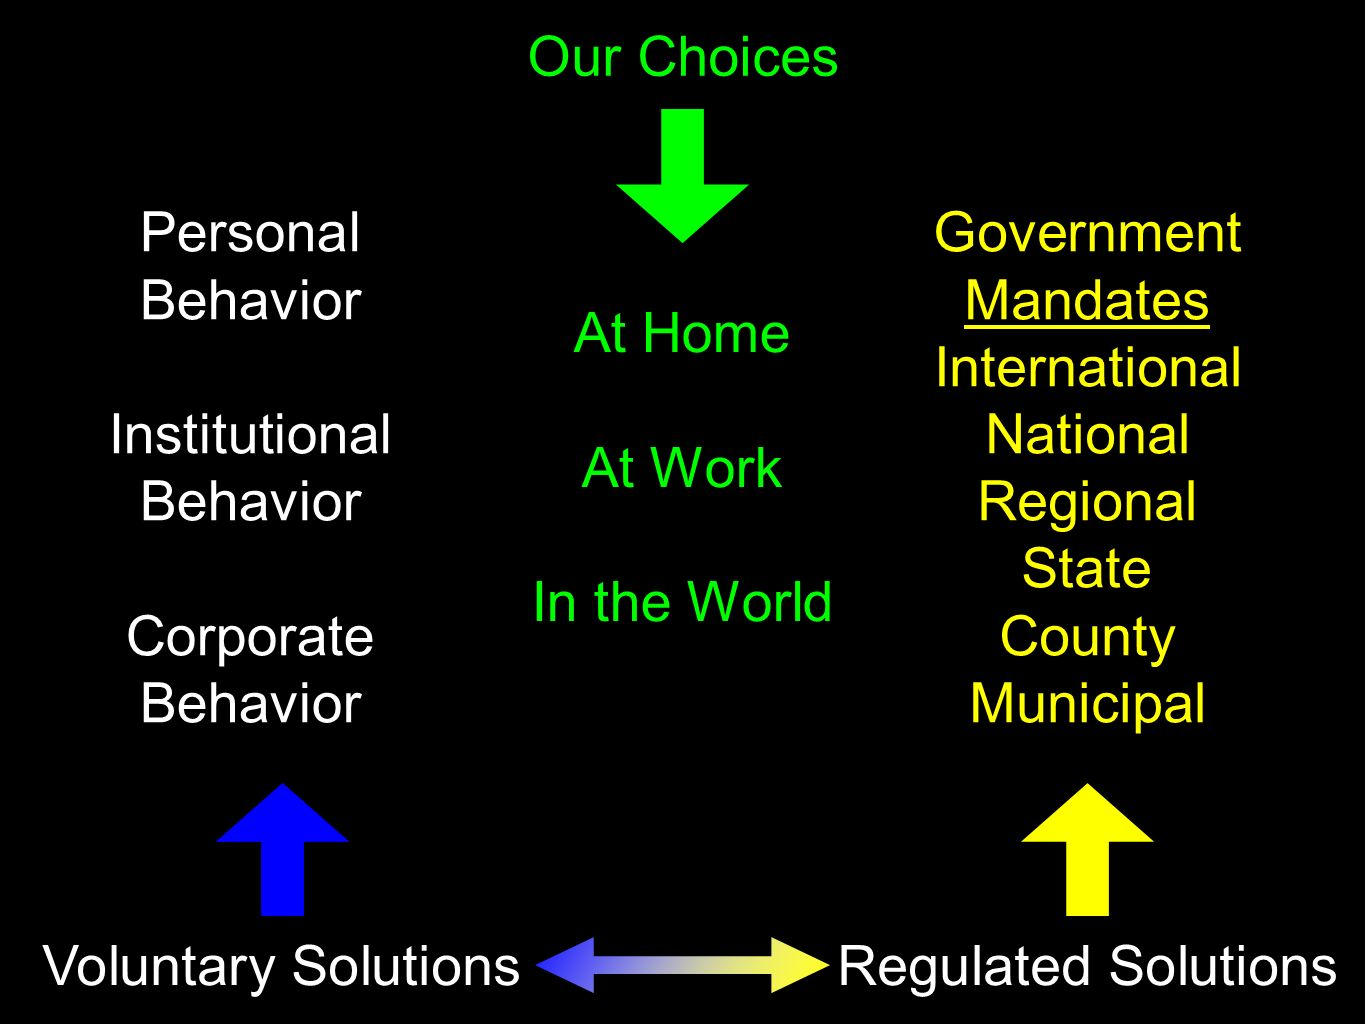 Voluntary SolutionsRegulated Solutions Our Choices Personal Behavior Institutional Behavior Corporate Behavior Government Mandates International National Regional State County Municipal At Home At Work In the World